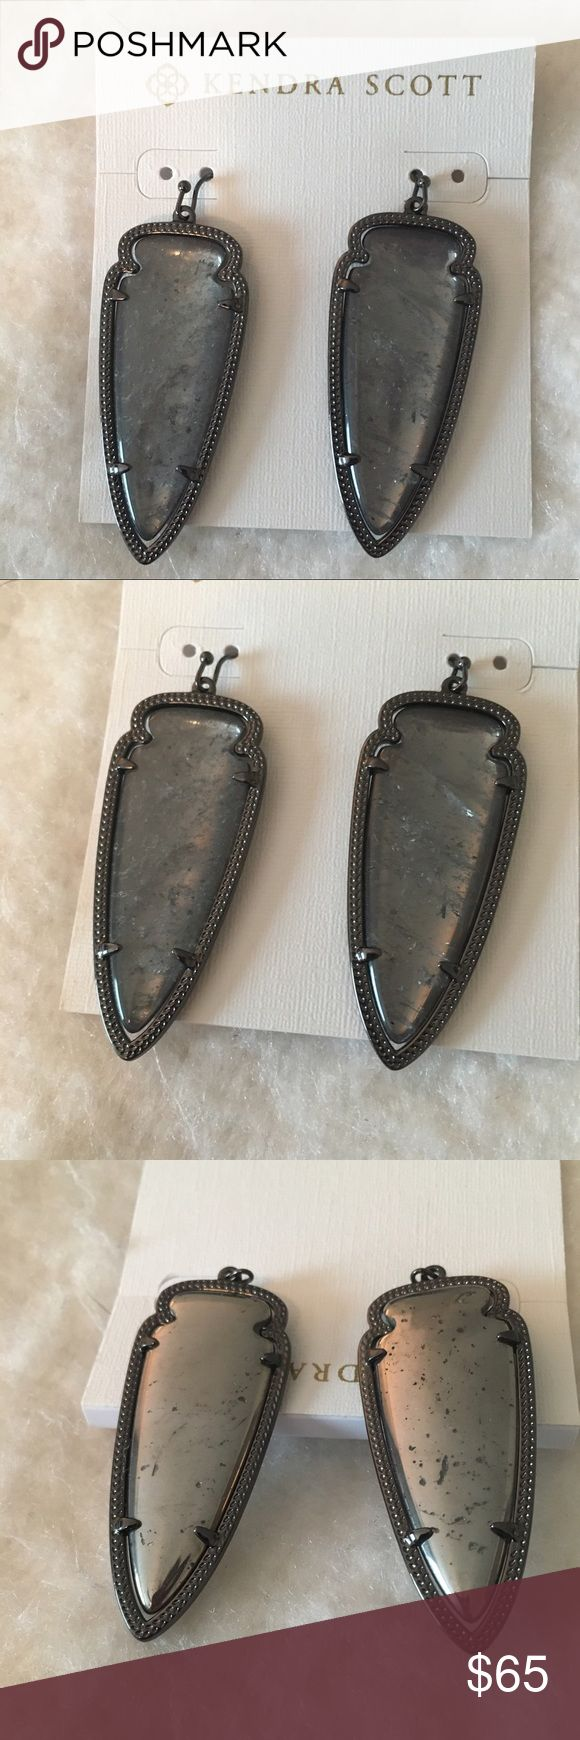 EUC Kendra Scott Skylar Rock Crystal Earrings Excellent used condition! Comes wth pouch & tag. Kendra Scott Jewelry Earrings